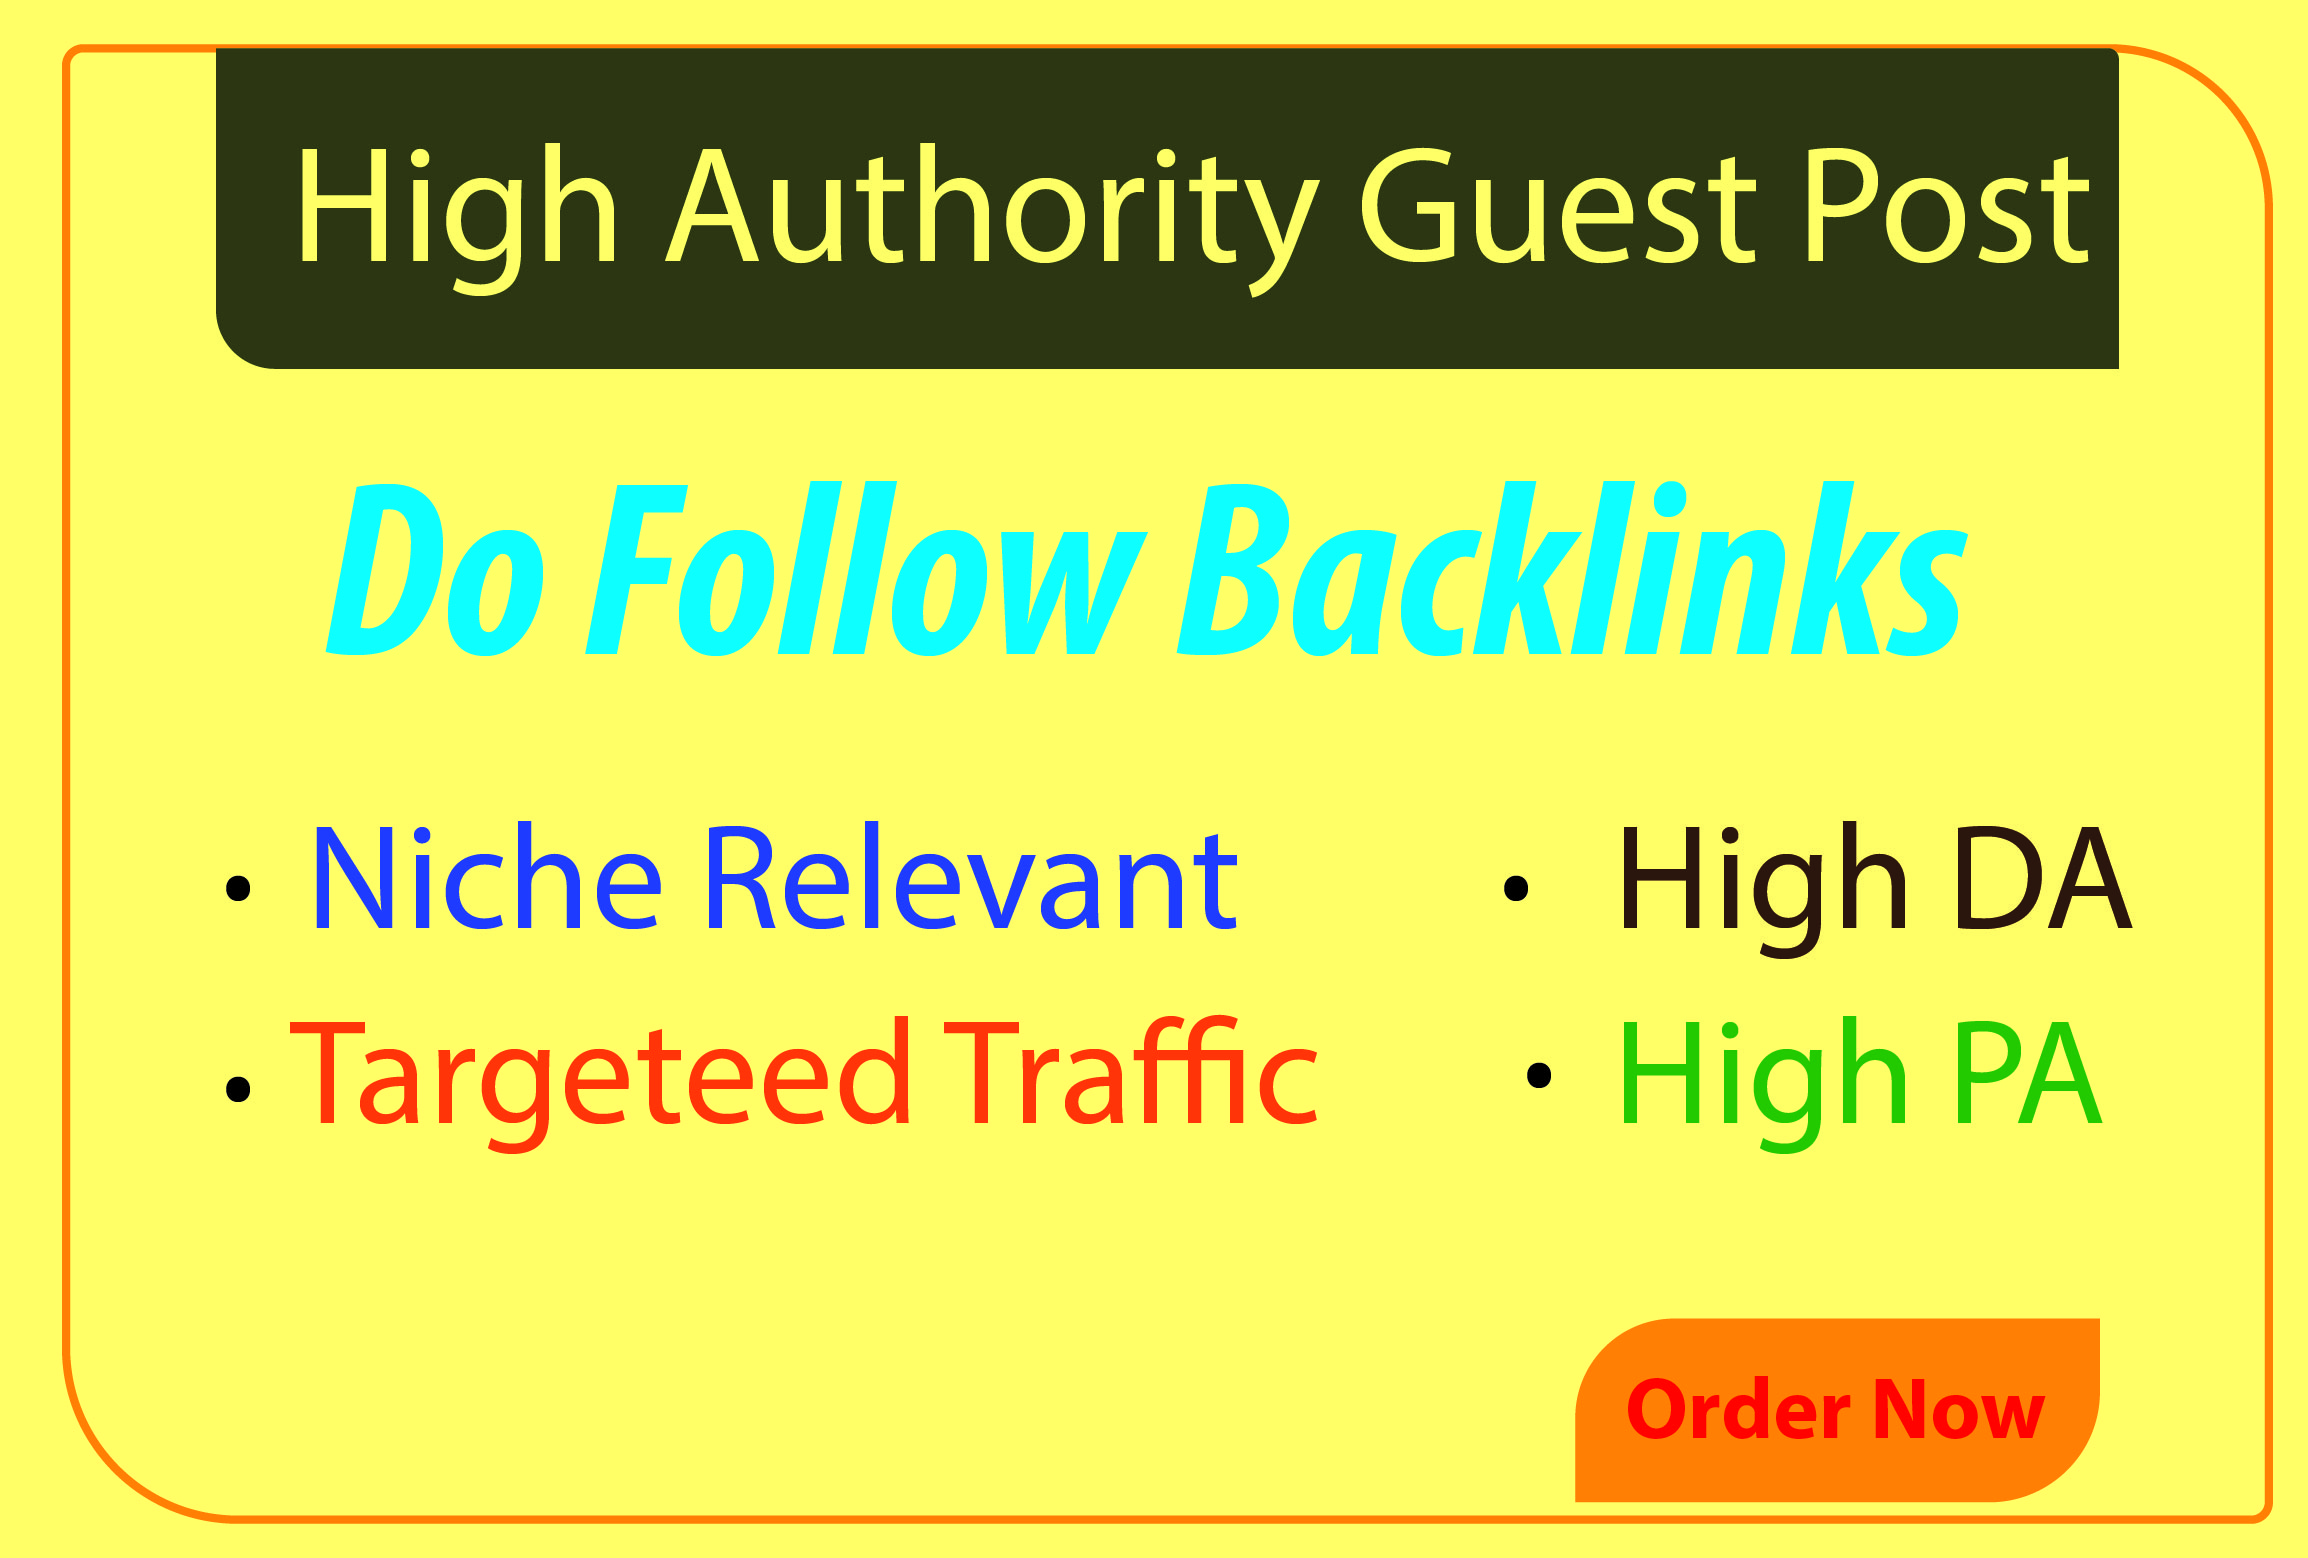 I will write and publish 1 niche guest post on high authority sites